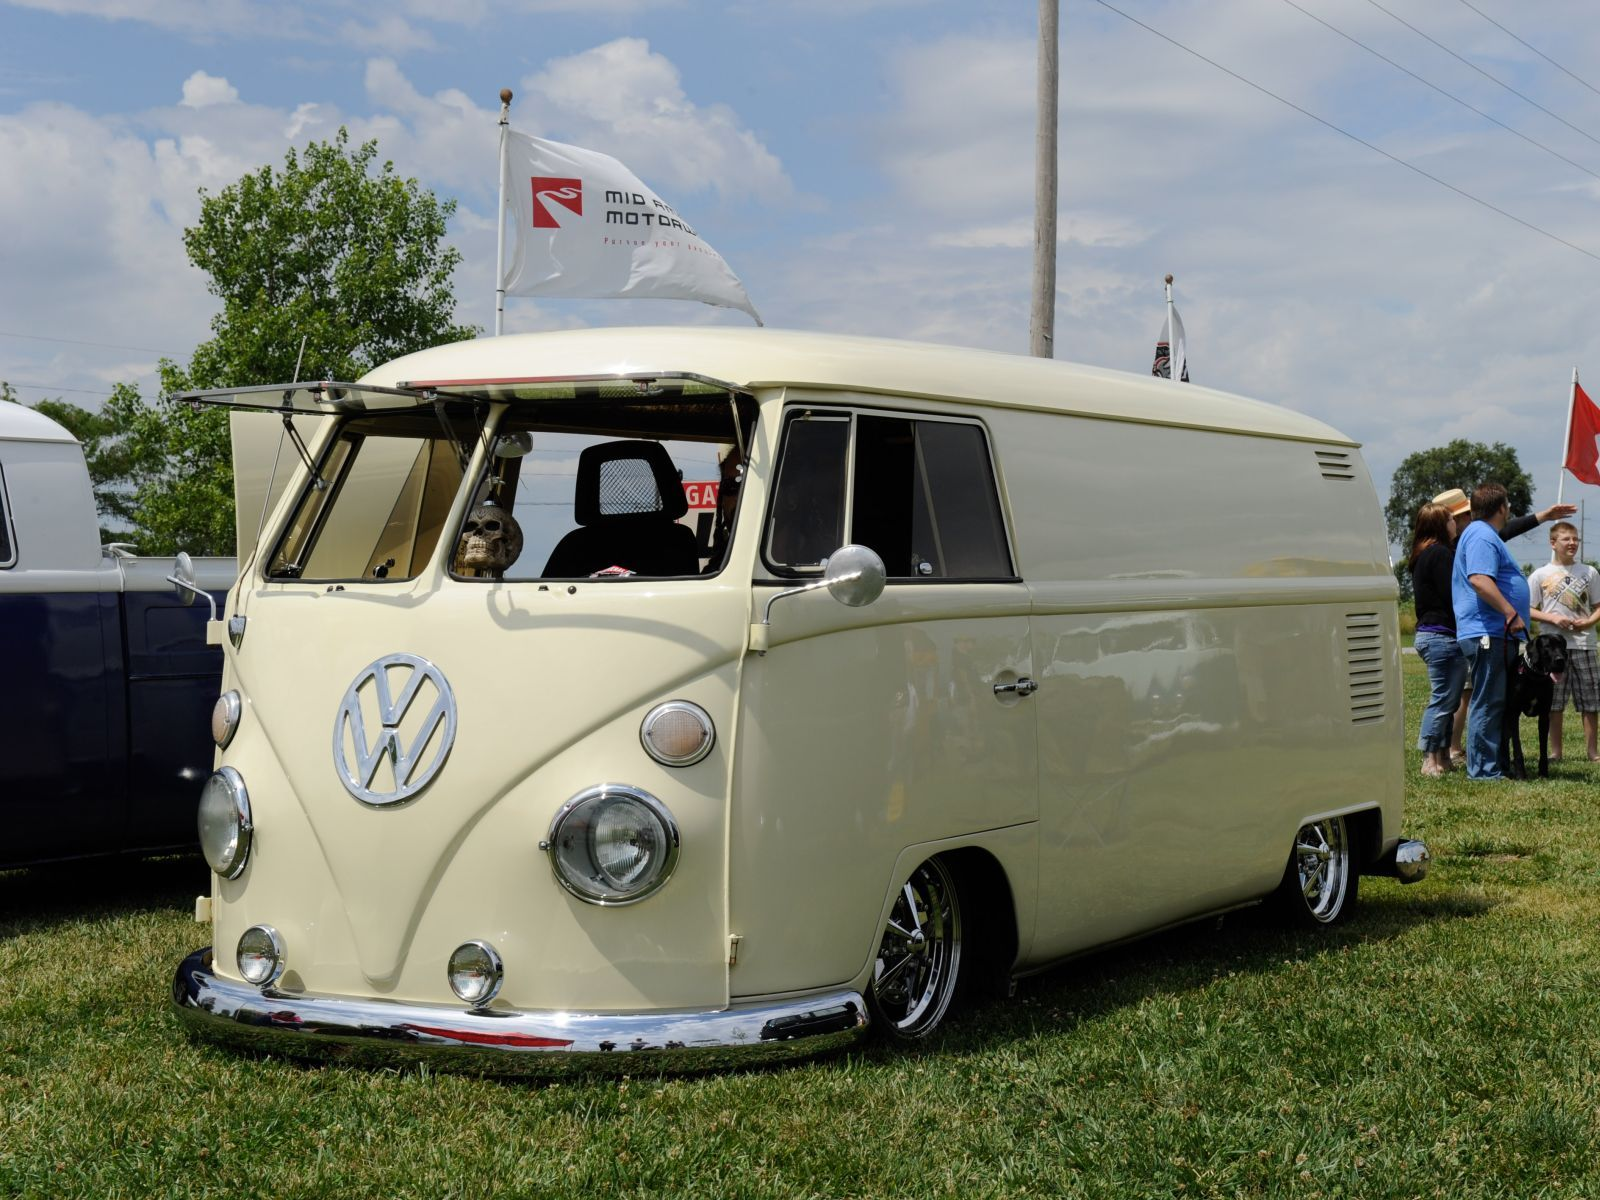 Funfest For Air Cooled Vw 2012 Bus Photo 12 1600x1200